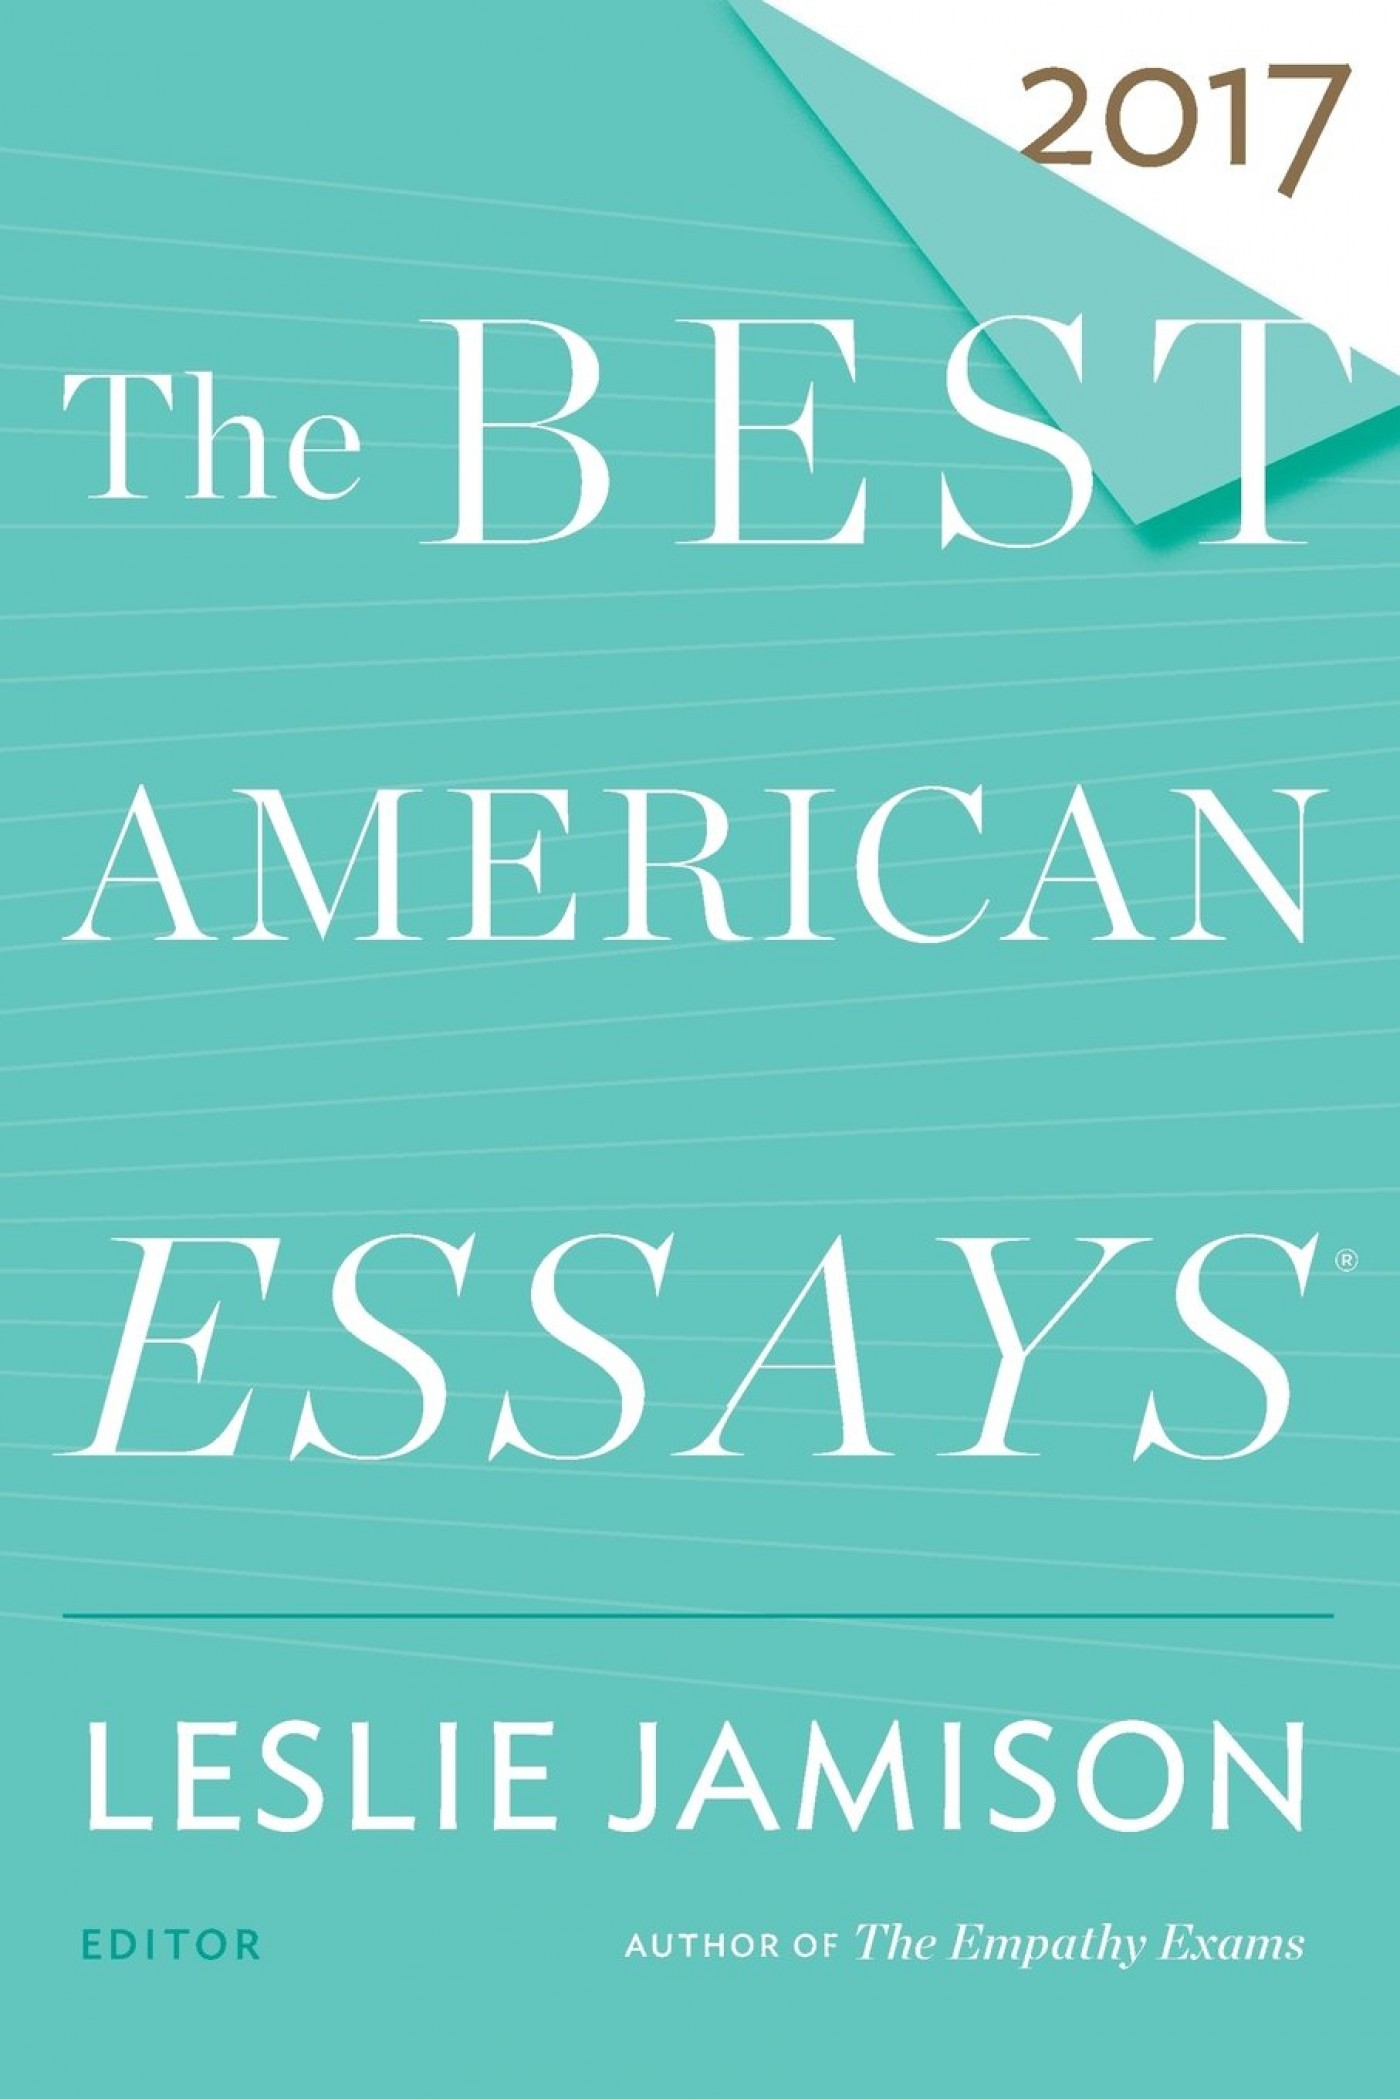 002 Essay Example 61tzl Nruvl The Best American Essays Phenomenal 2016 Pdf Download Audiobook Sparknotes 1400